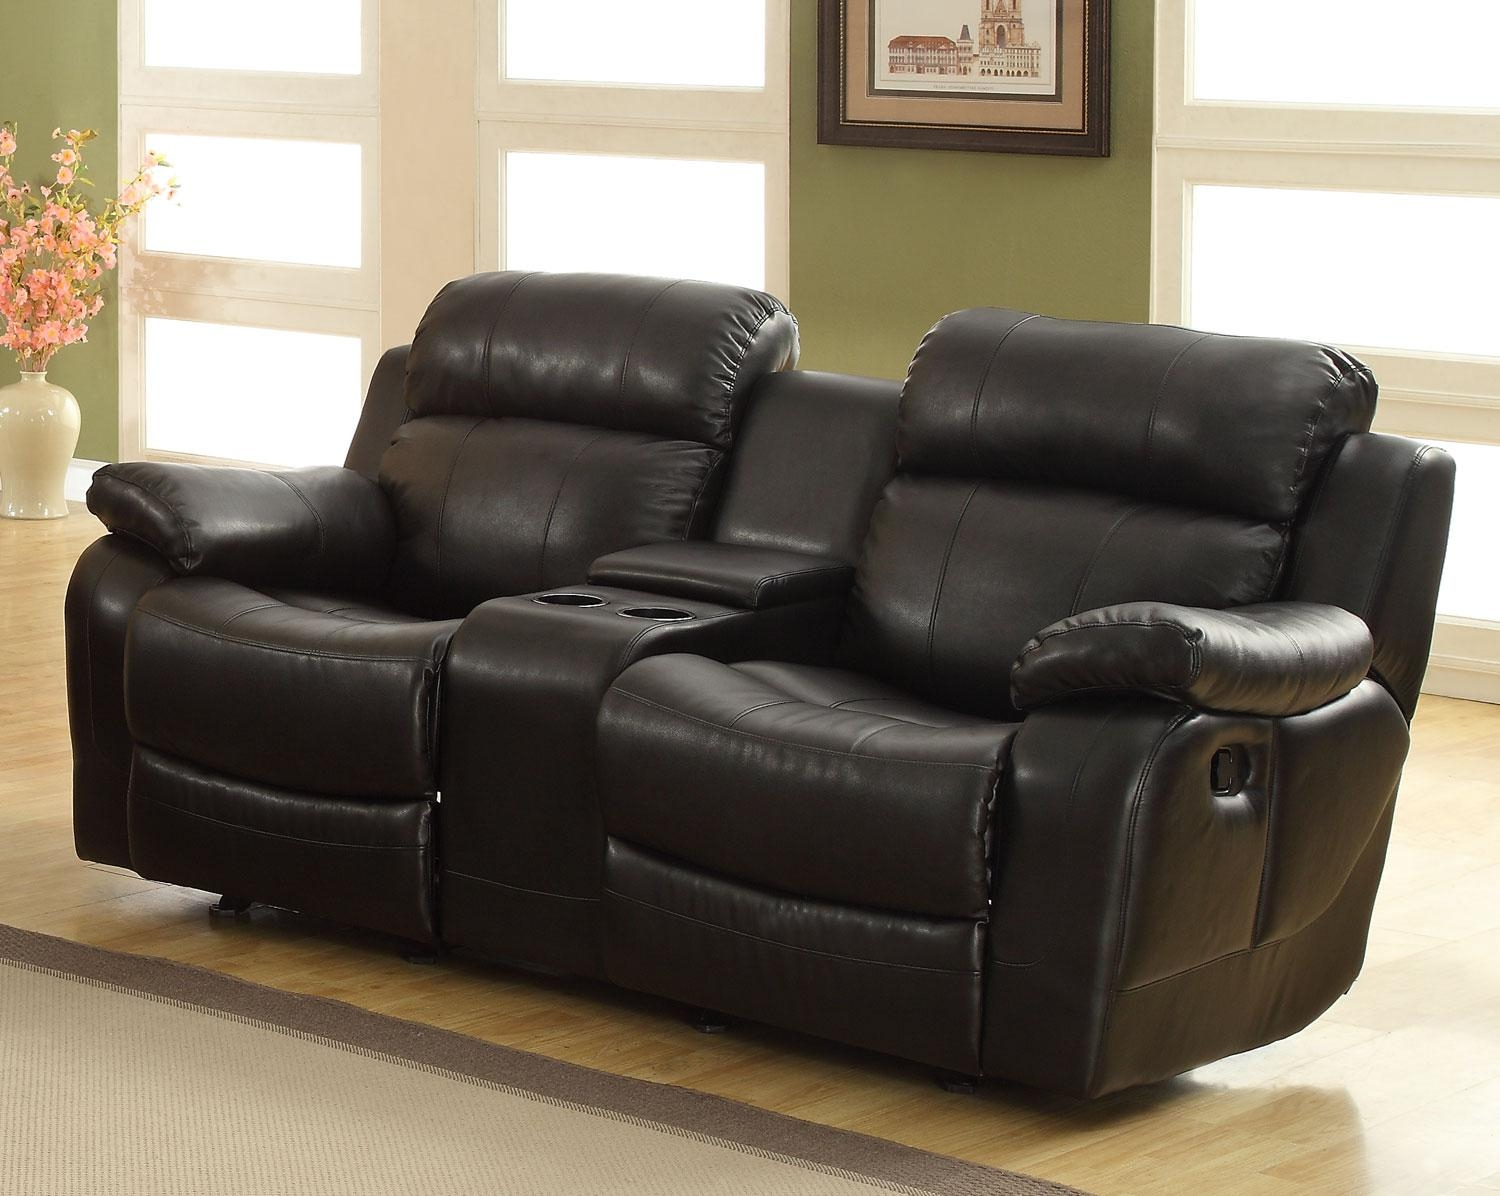 black and white leather sofa sets online shopping 20 photos sofas loveseats ideas